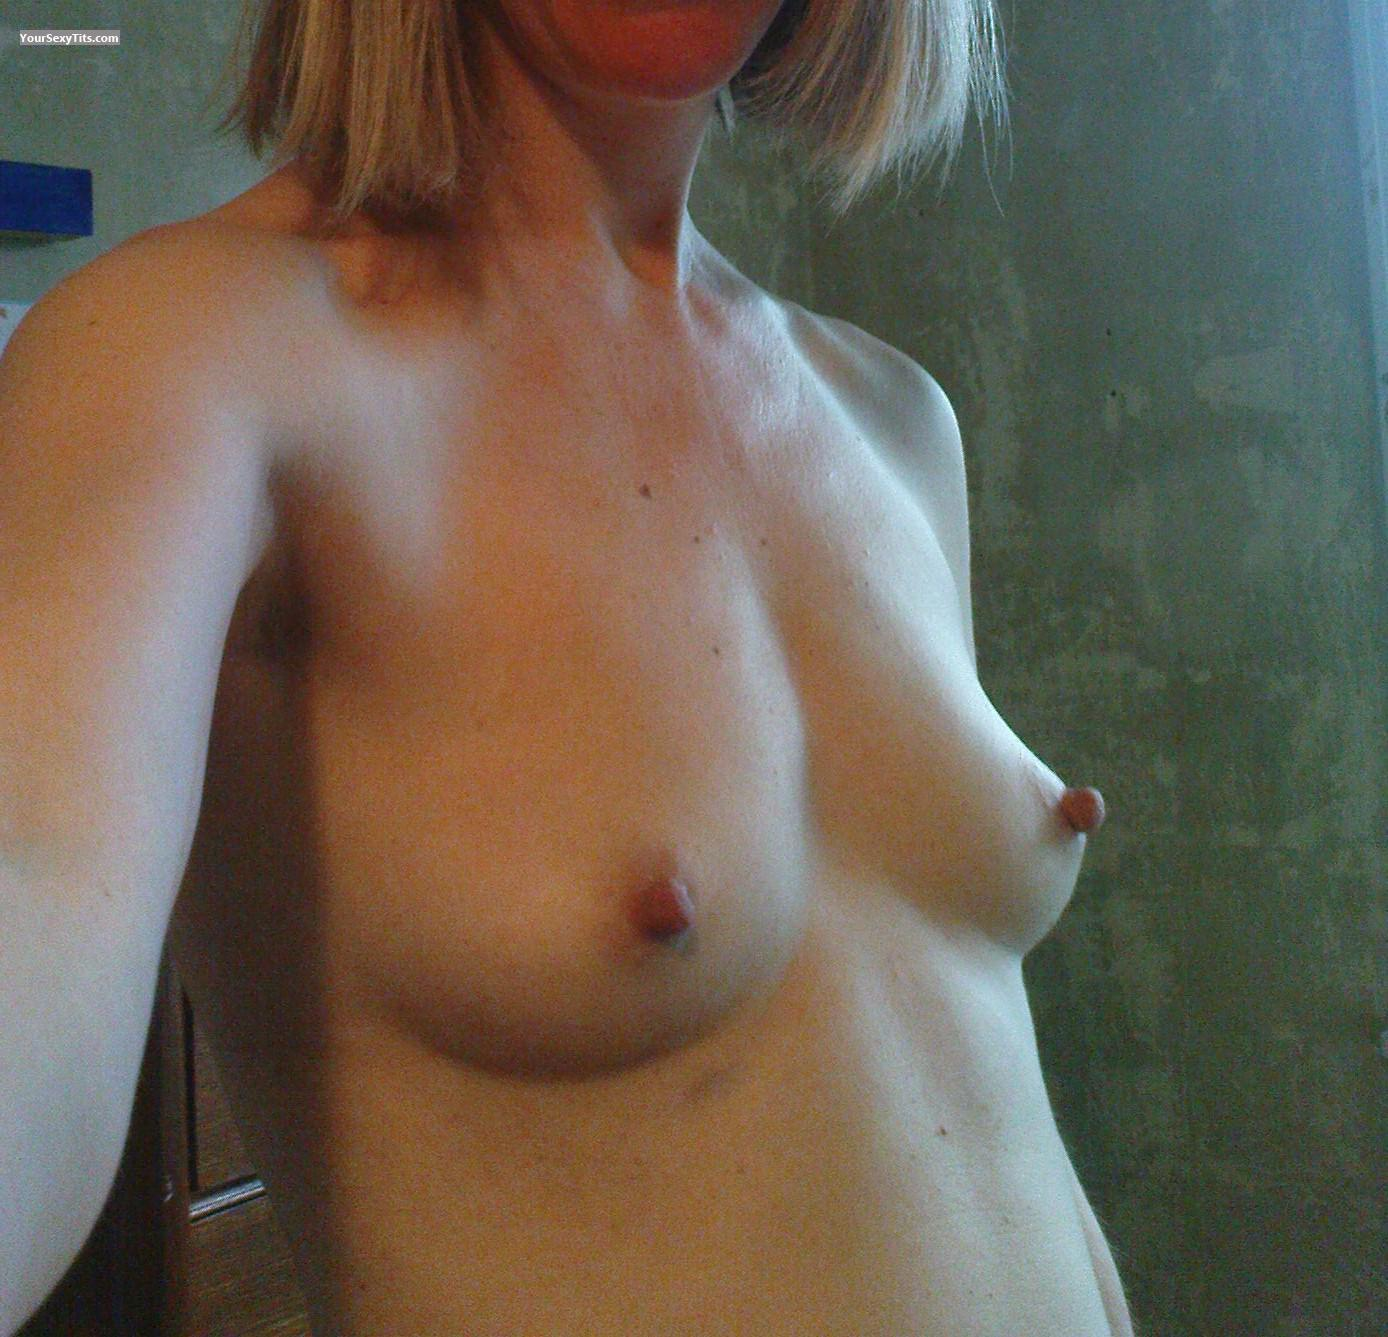 My Very Small Tits Selfie Lovely Little Pert Breast From United